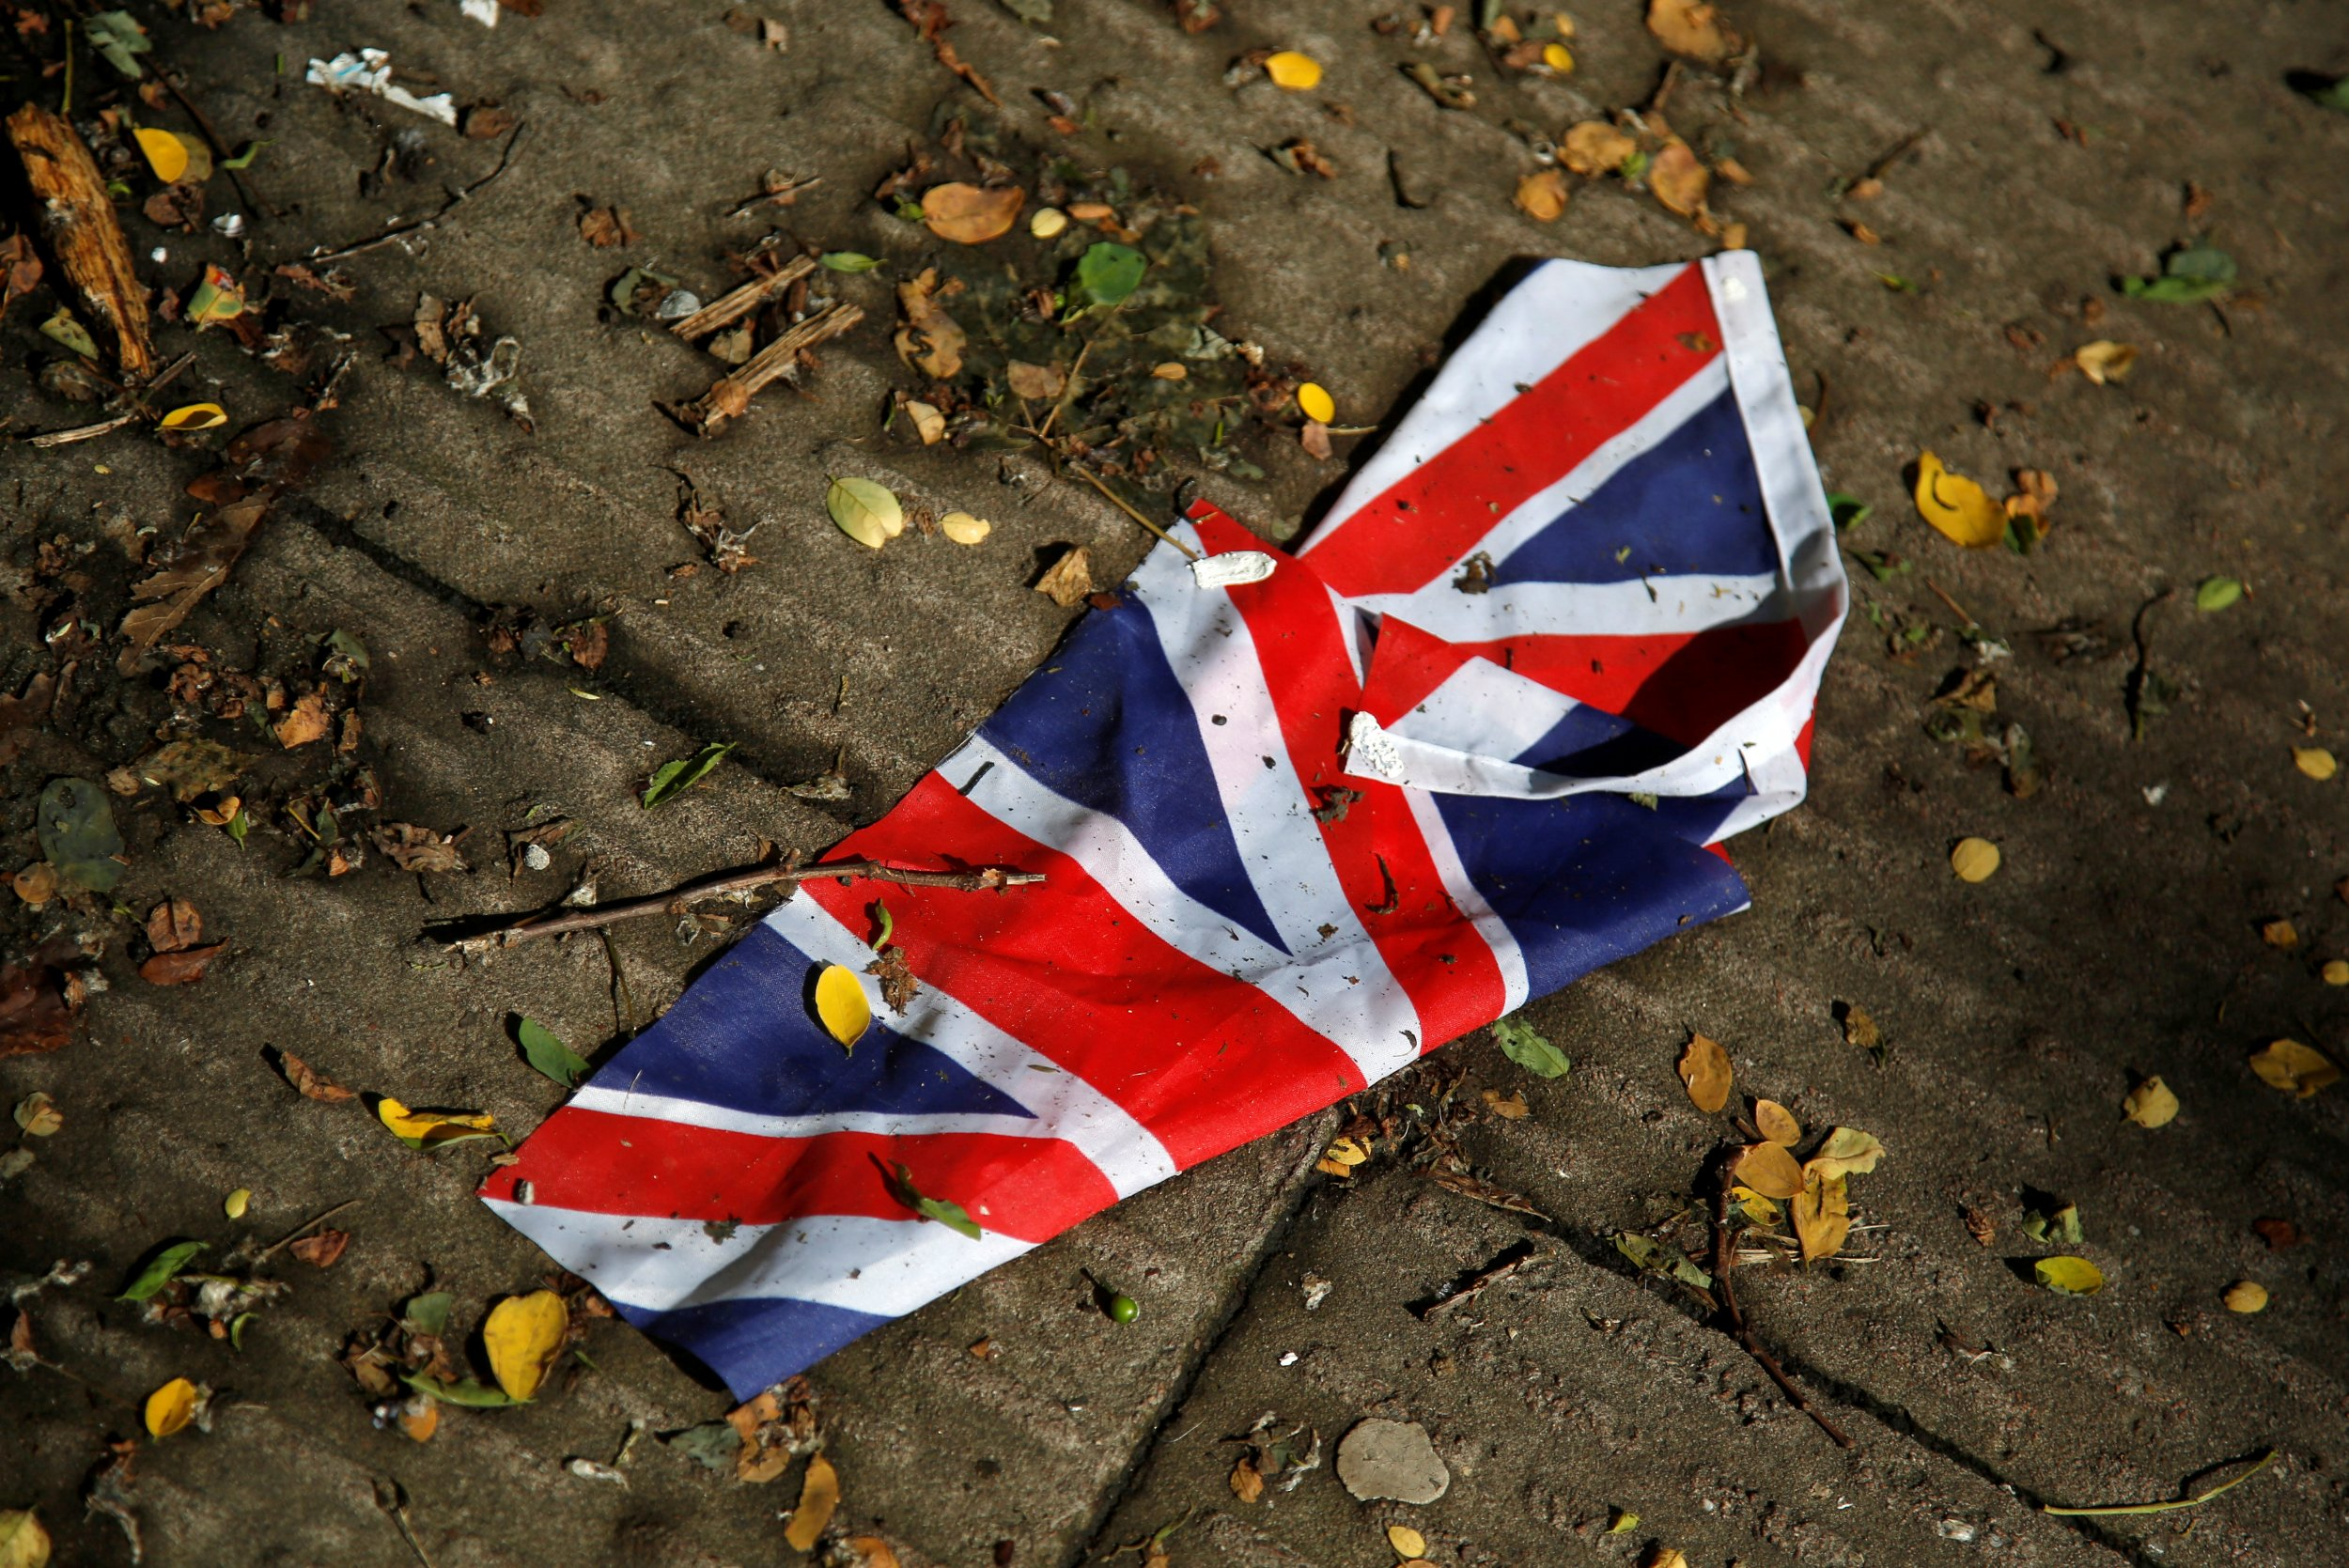 A washed away Union flag